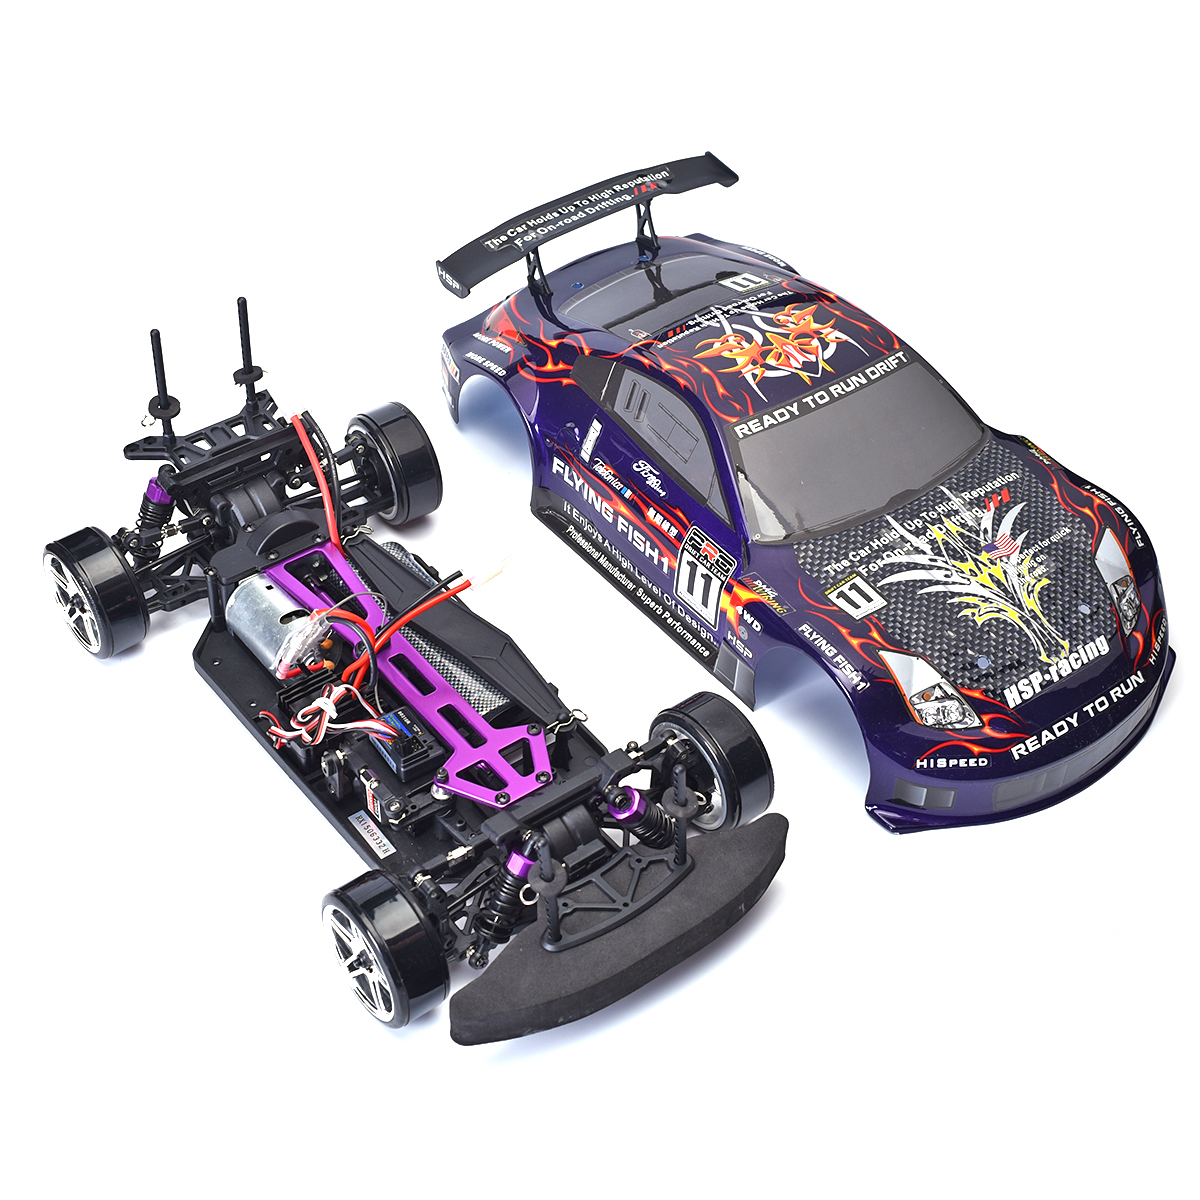 hsp rc car 4wd 1 10 scale electric power on road drift rc car 94123 high speed ebay. Black Bedroom Furniture Sets. Home Design Ideas